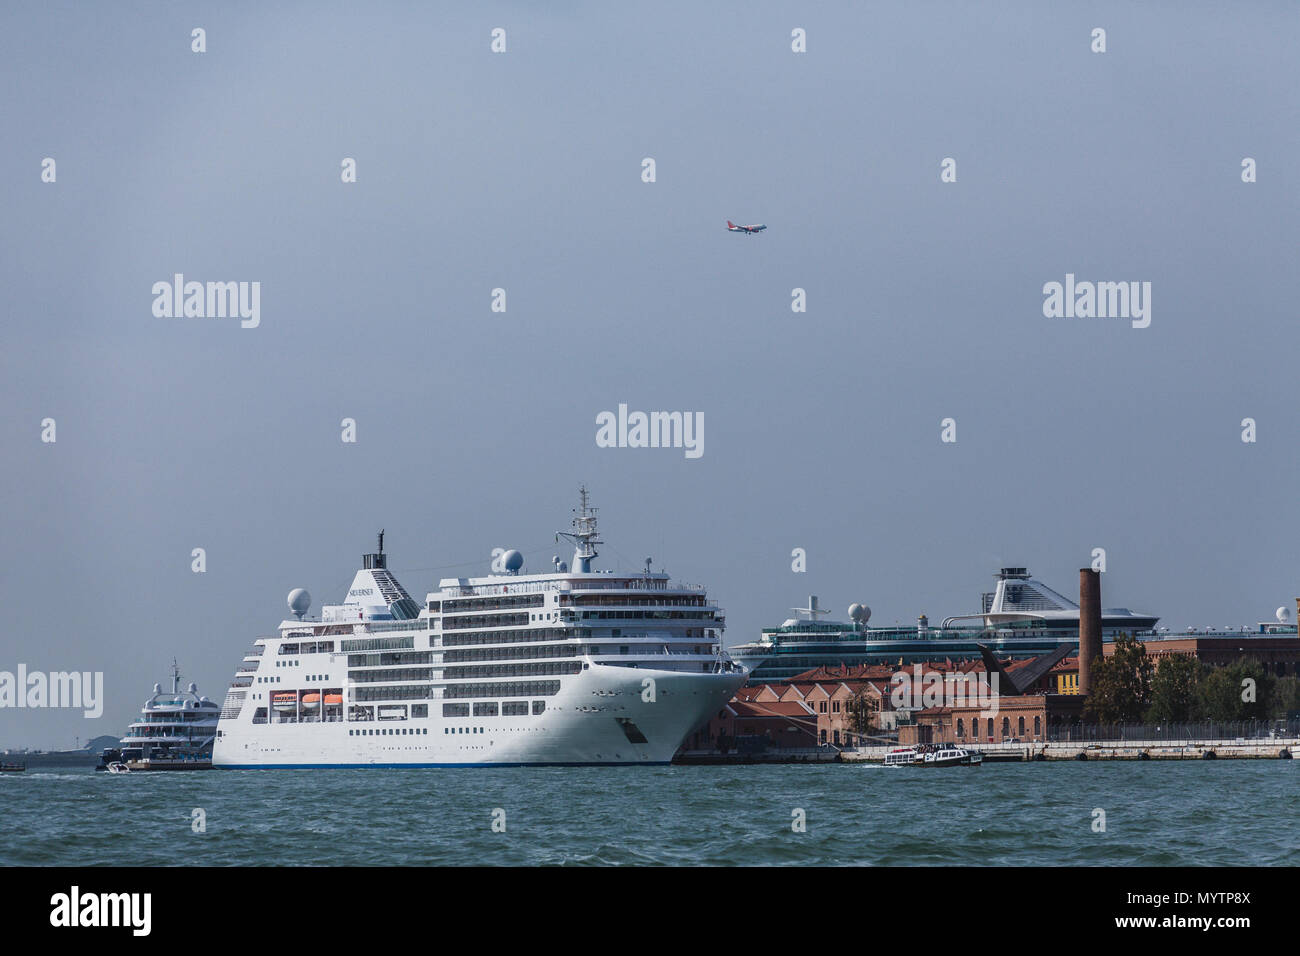 Airplane Over Cruise Ships in Venice Stock Photo